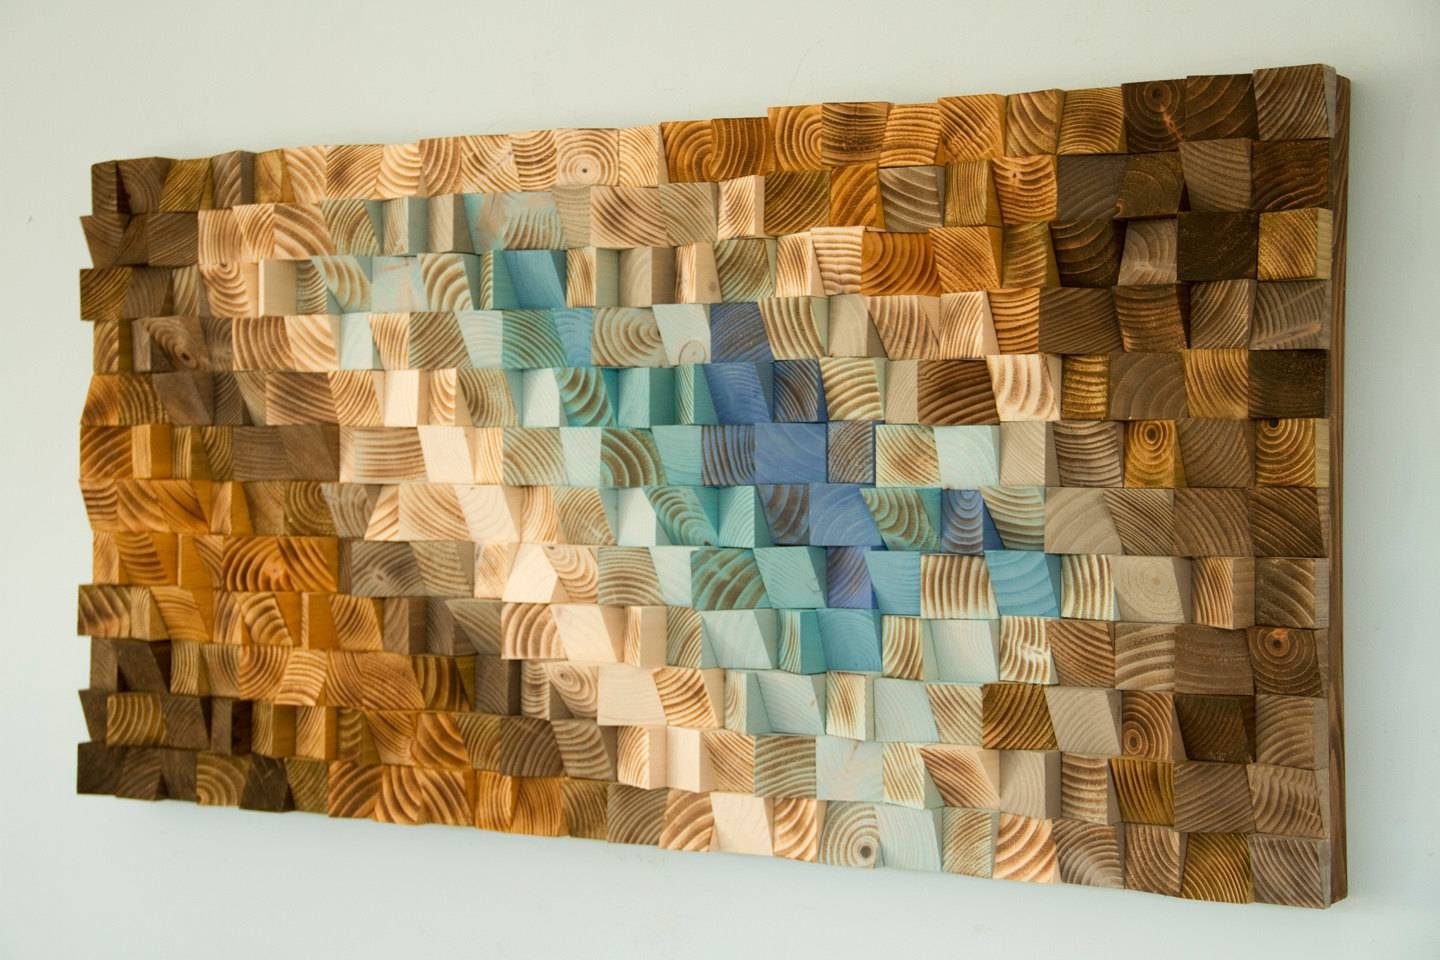 Modern Wood Wall Art, Wood Mosaic, Geometric Art, Wood Decor Throughout Current Wall Art On Wood (View 20 of 20)